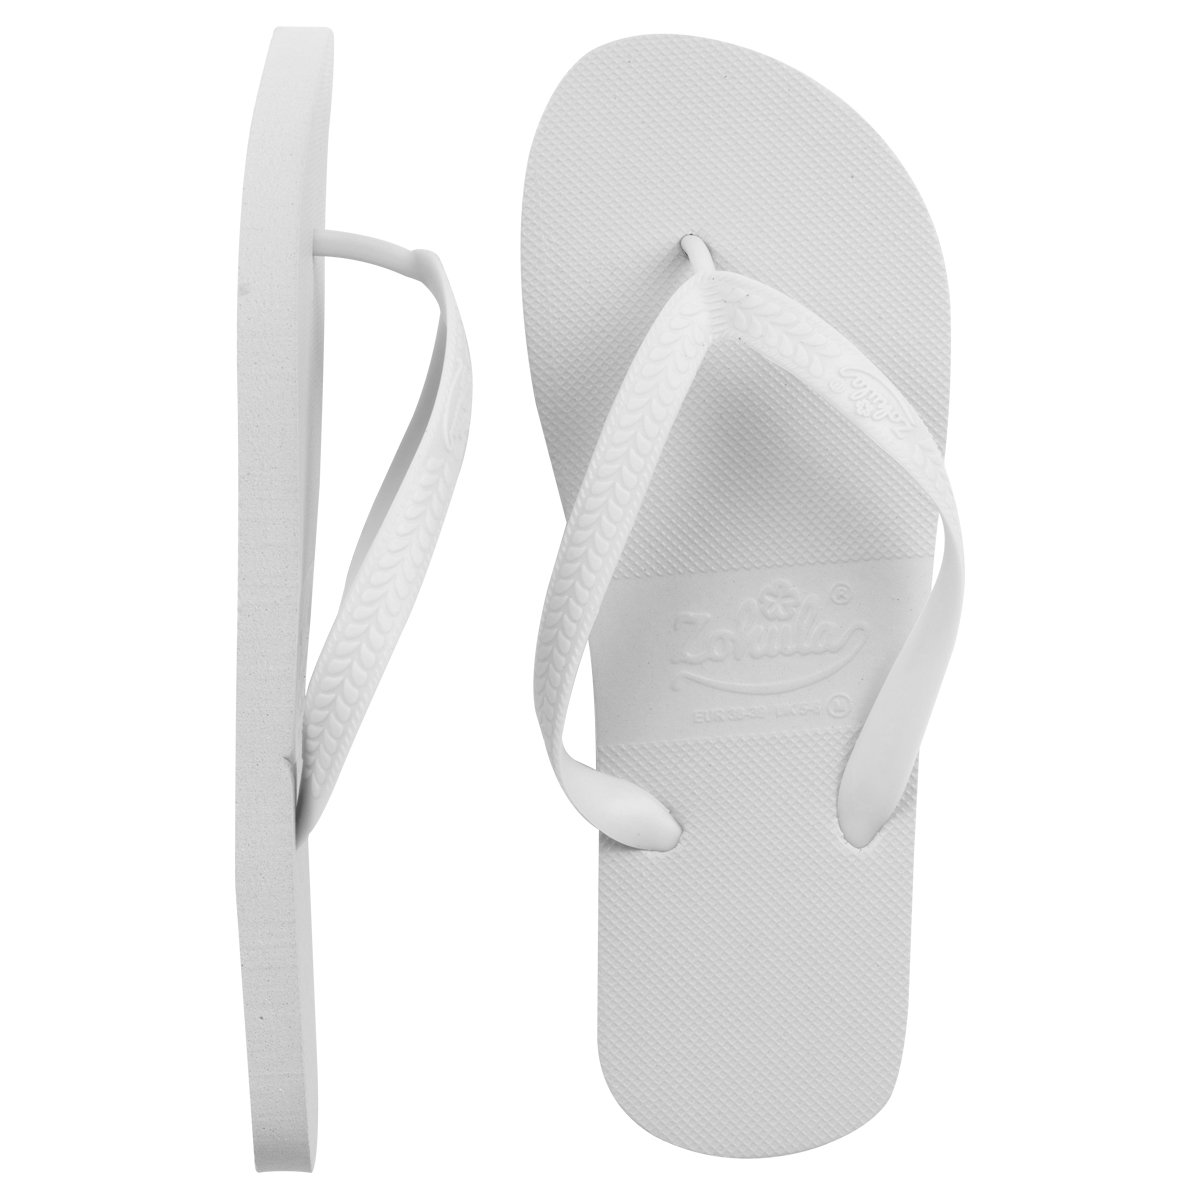 bb14b27df Zohula White Originals Party Pack - 20 Pairs Mixed Sizes - Sx3 Mx12 Lx5  Including Wicker Basket  Amazon.co.uk  Shoes   Bags